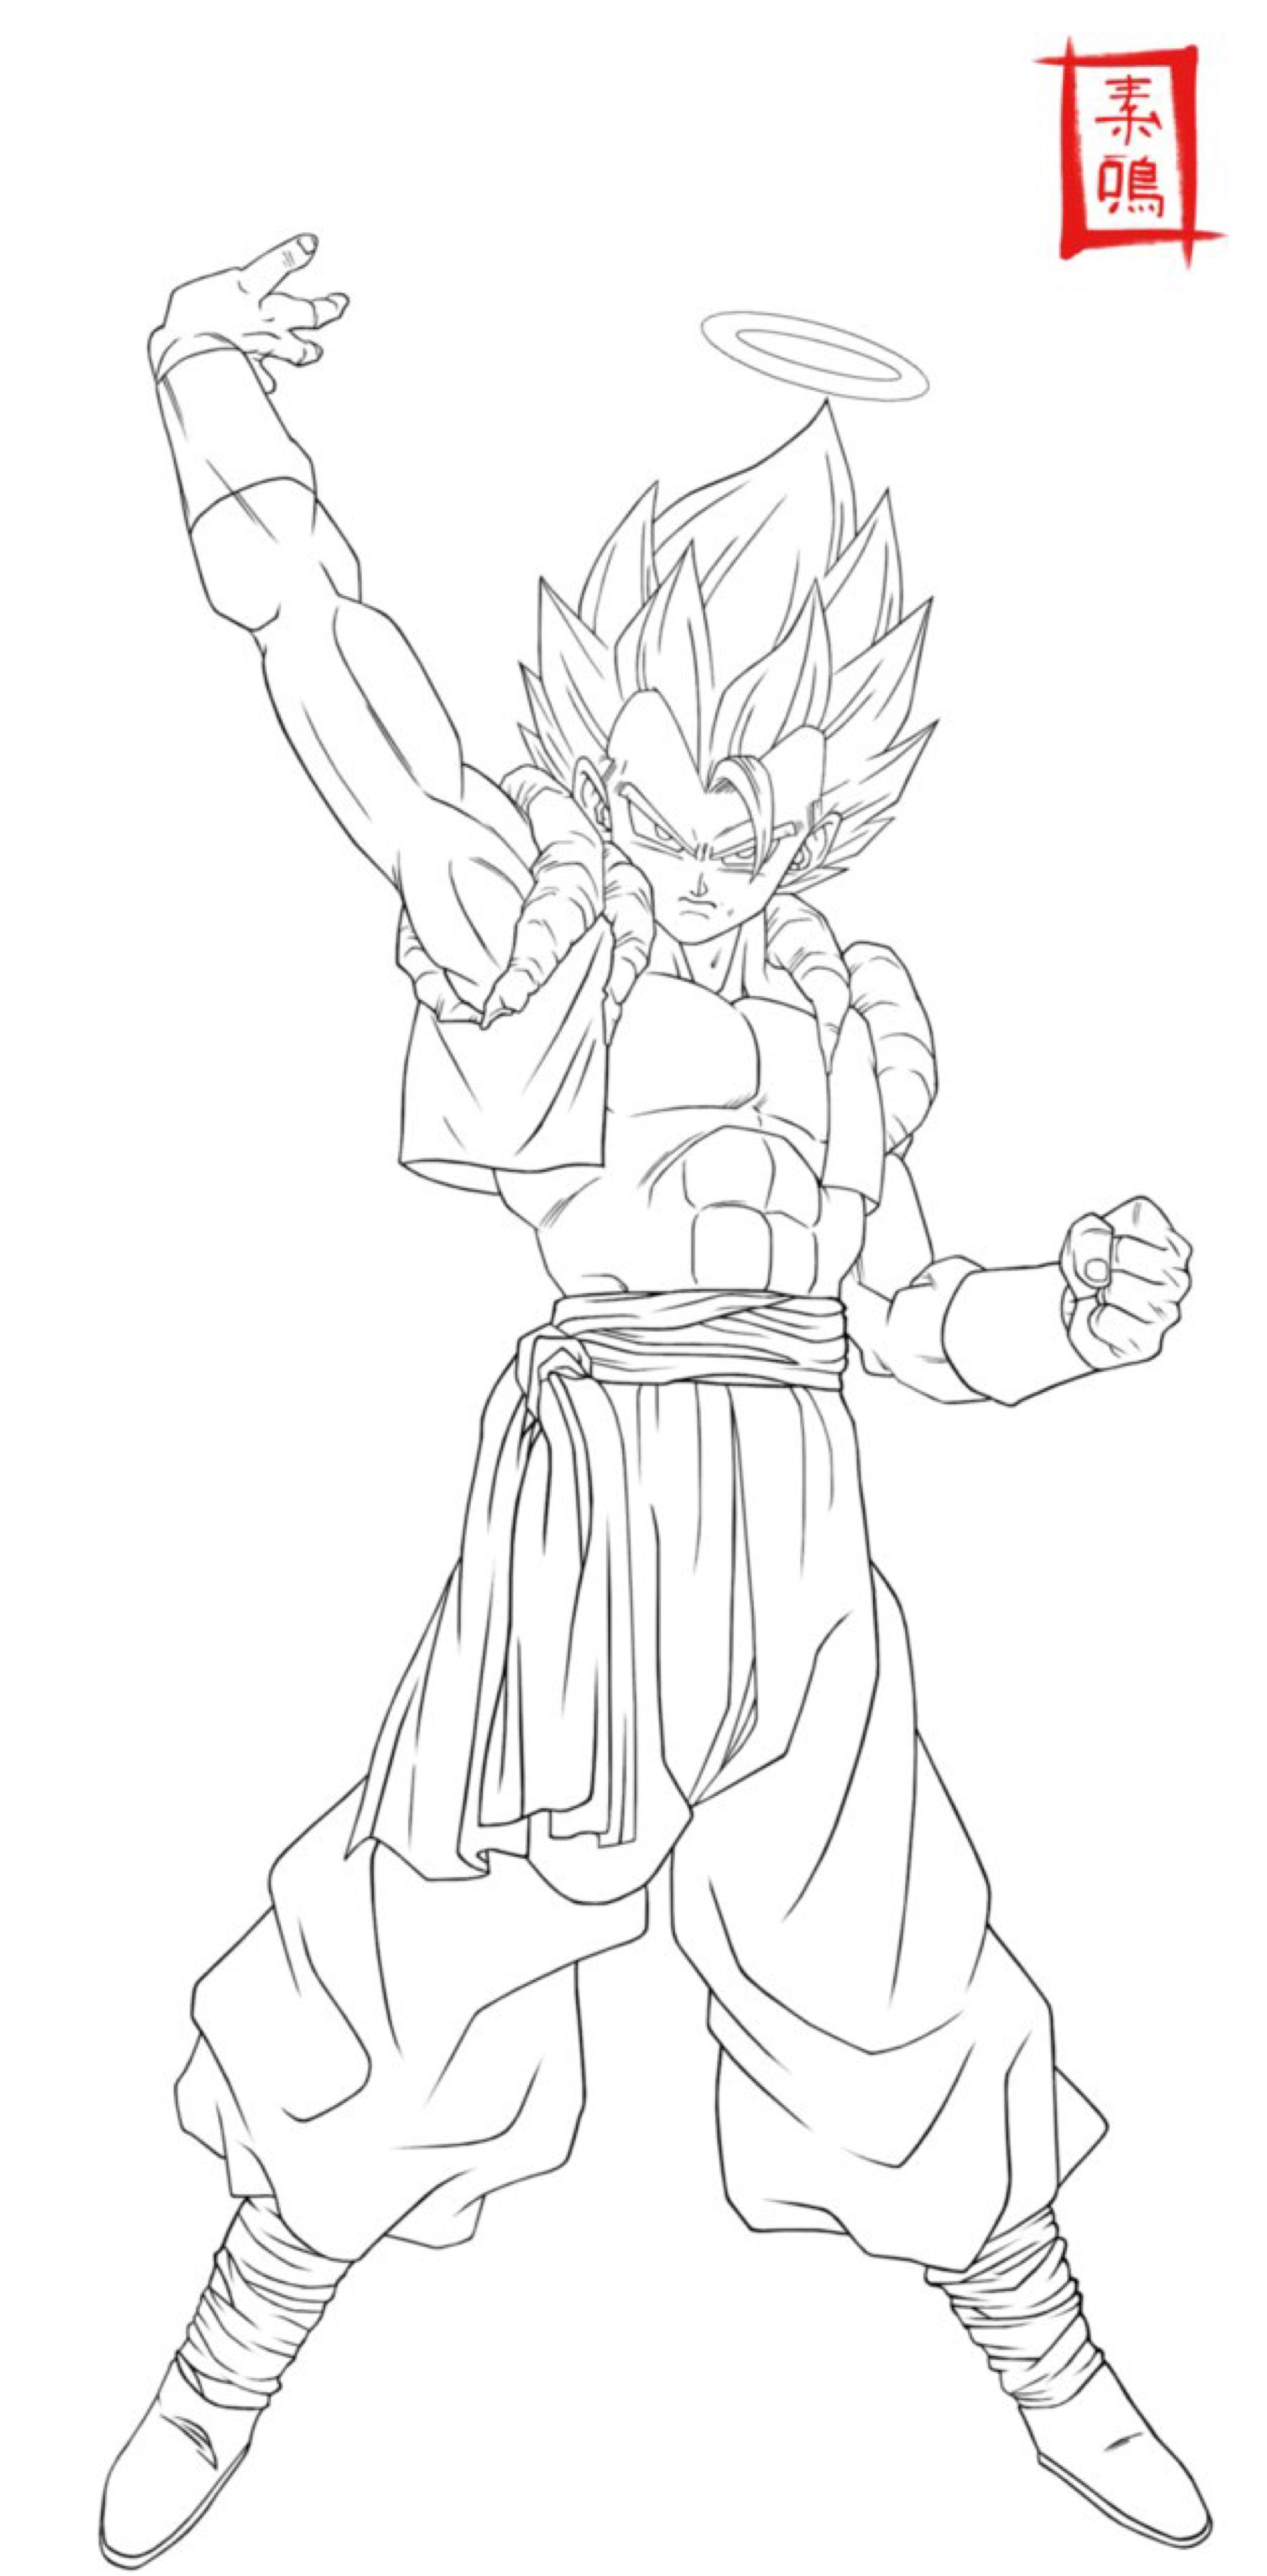 Ultimate Gogeta Lineart by SnaKou on @DeviantArt